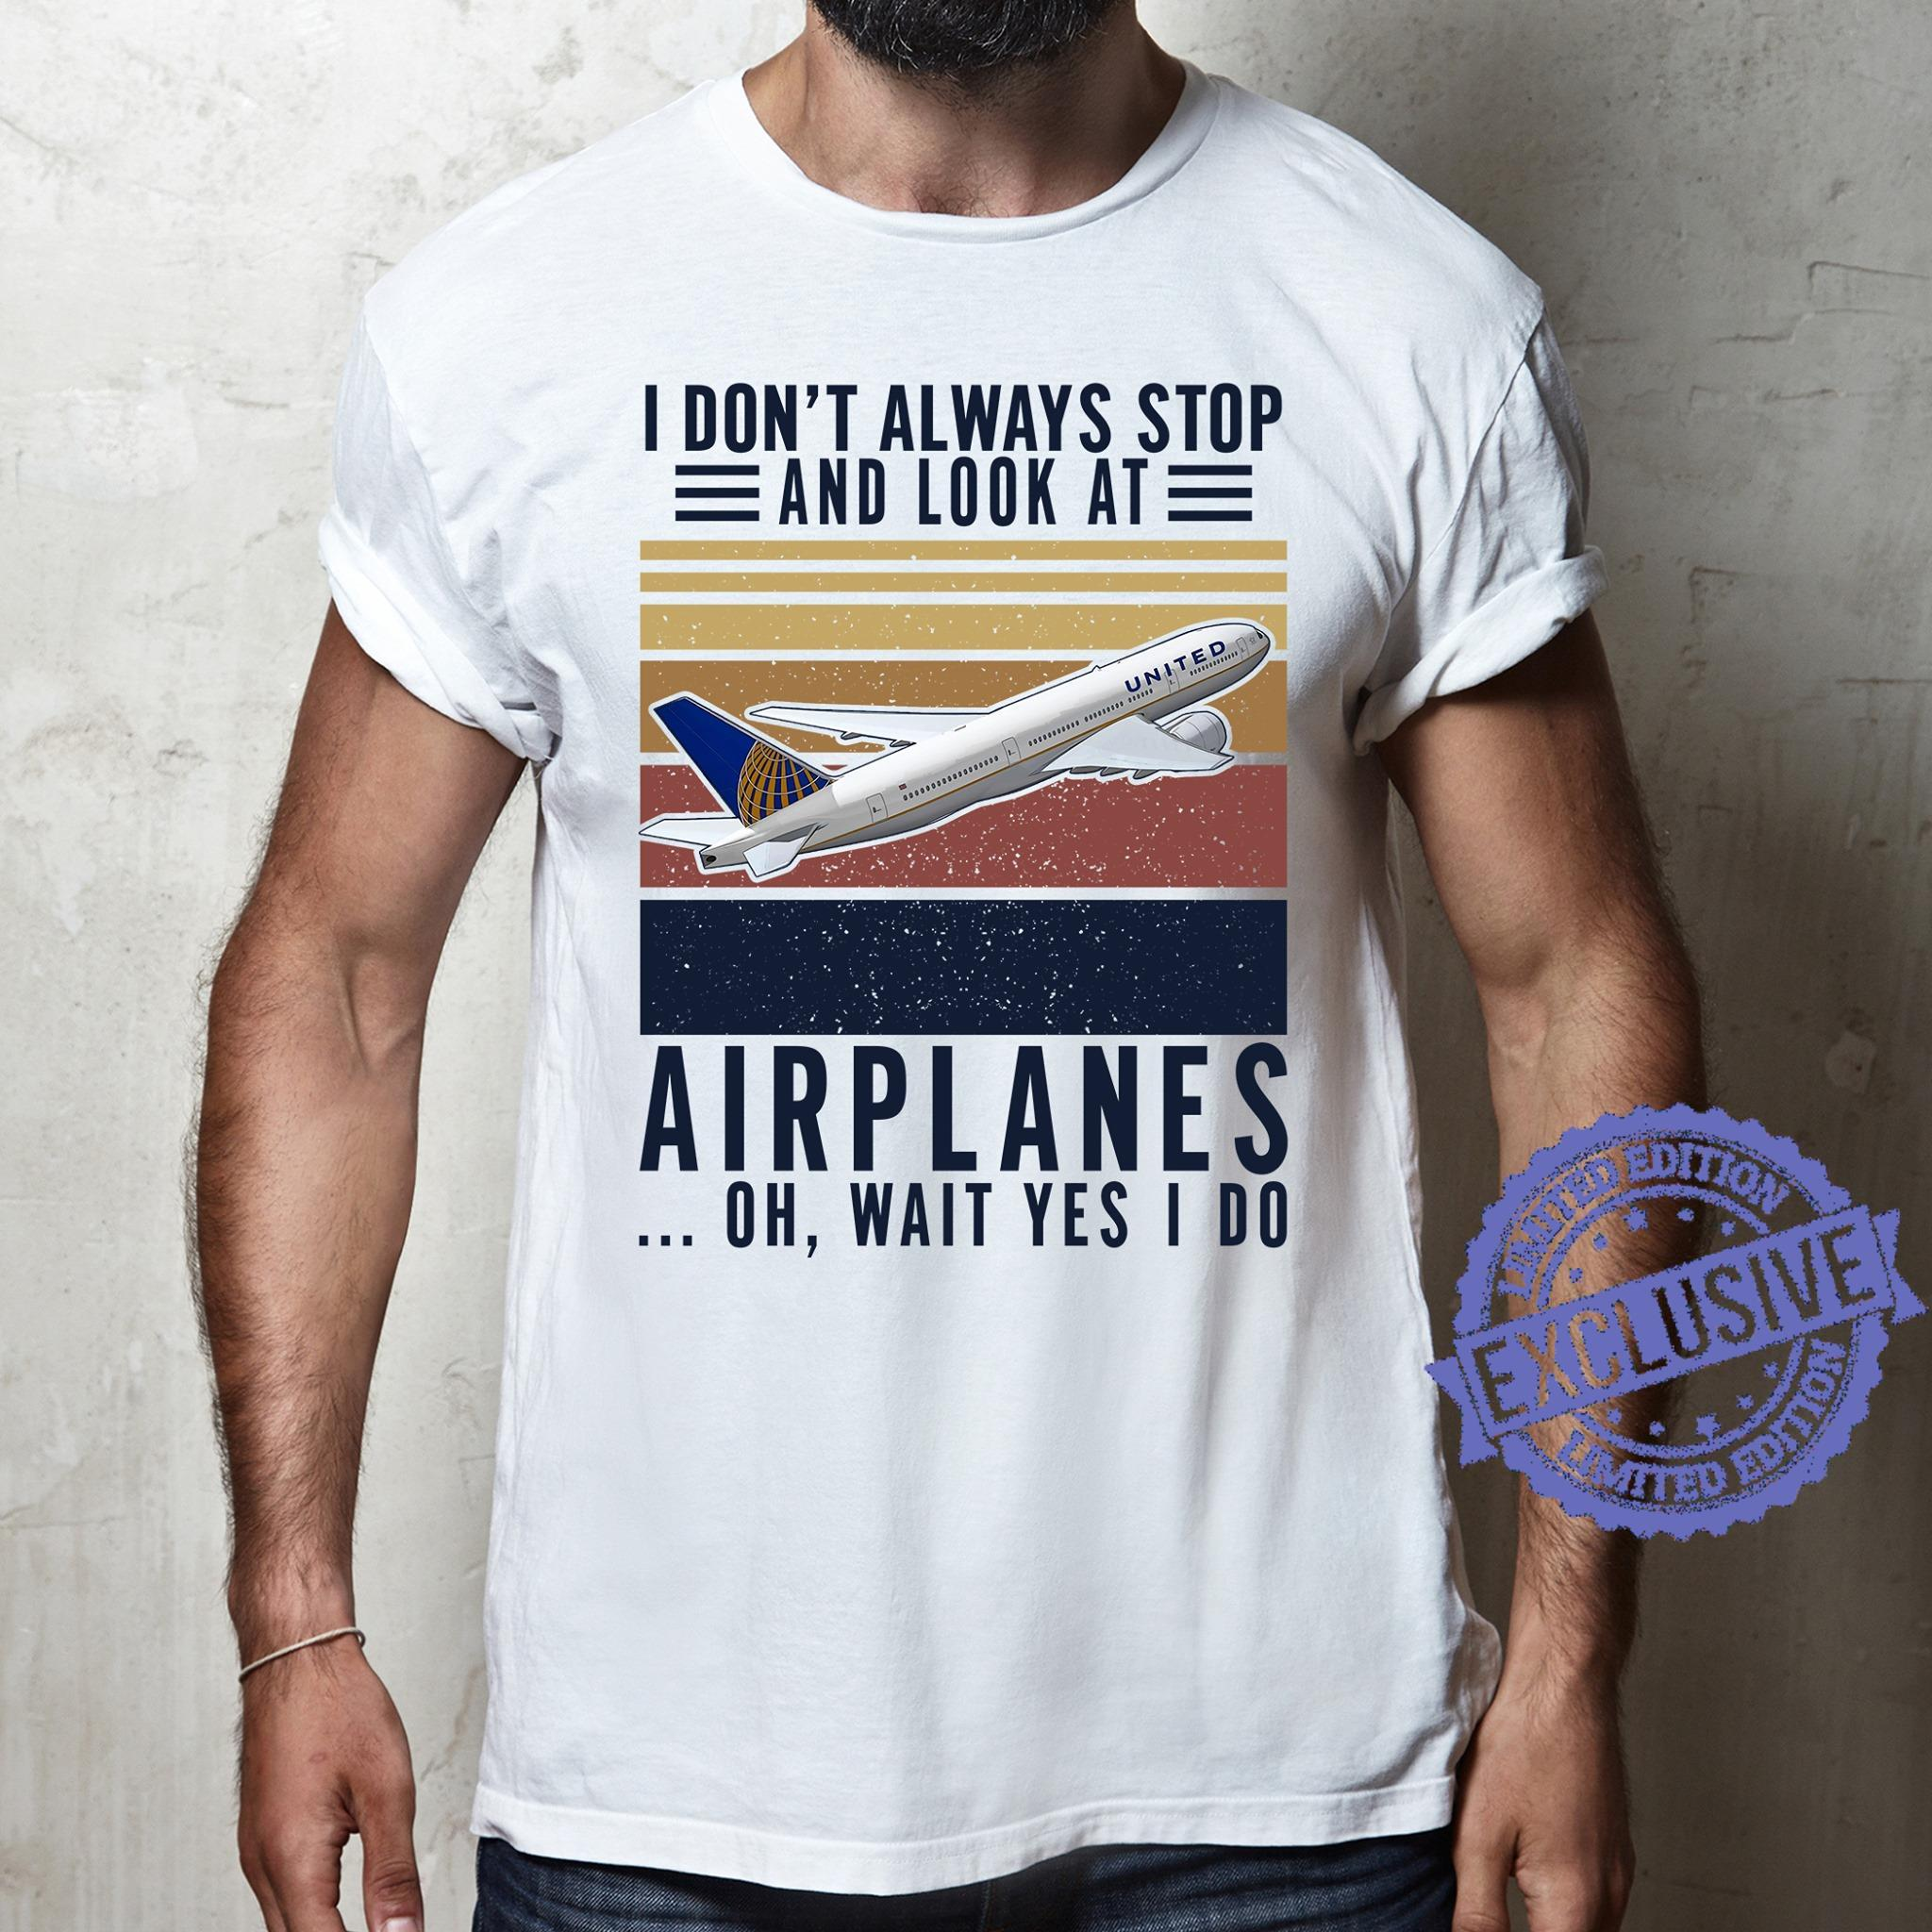 I don't always stop and look at airplanes oh wait yes i do shirt